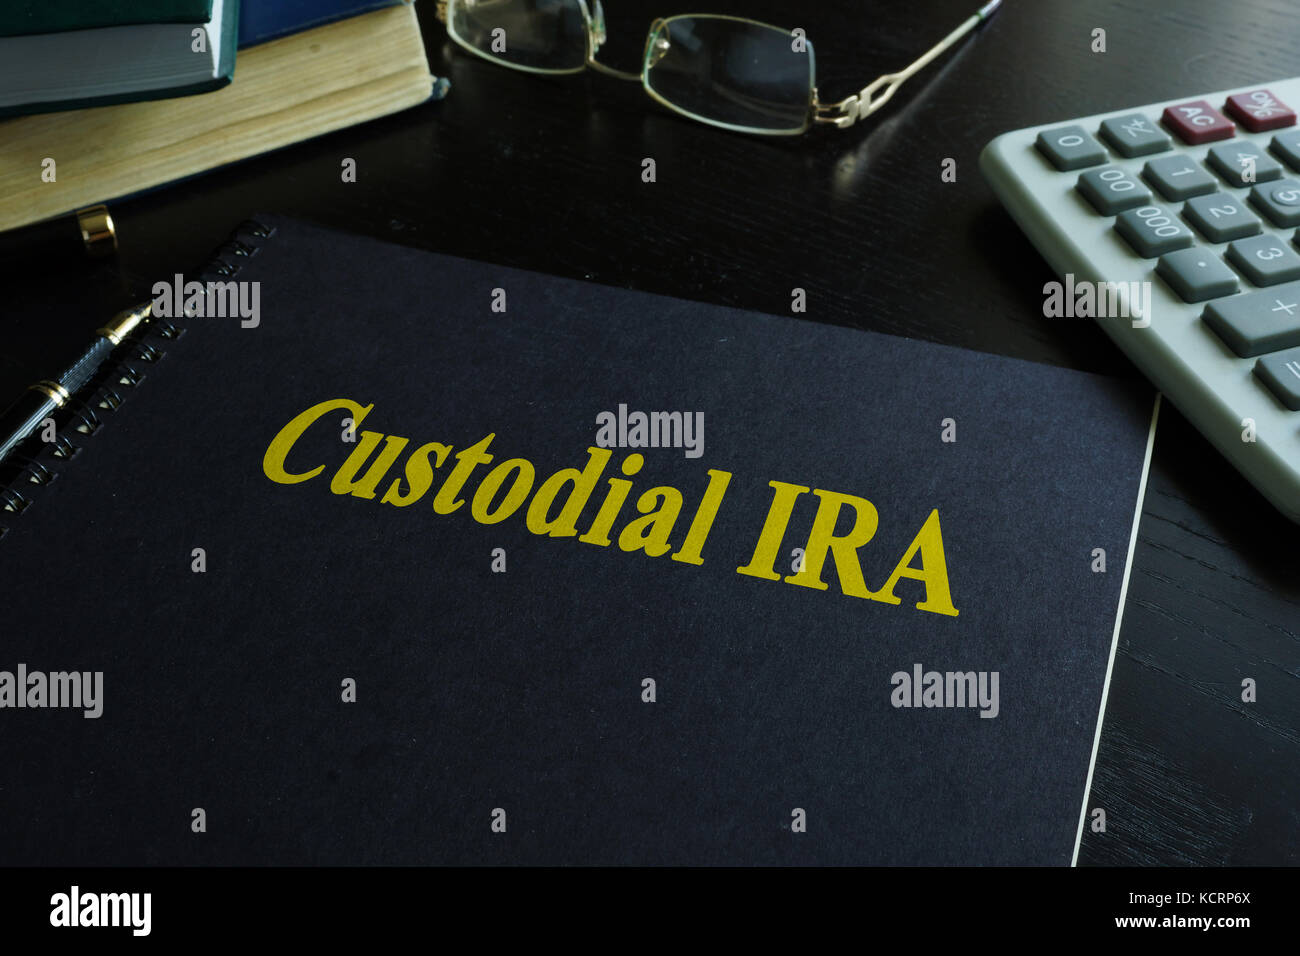 Book with title Custodial IRA on a desk. - Stock Image